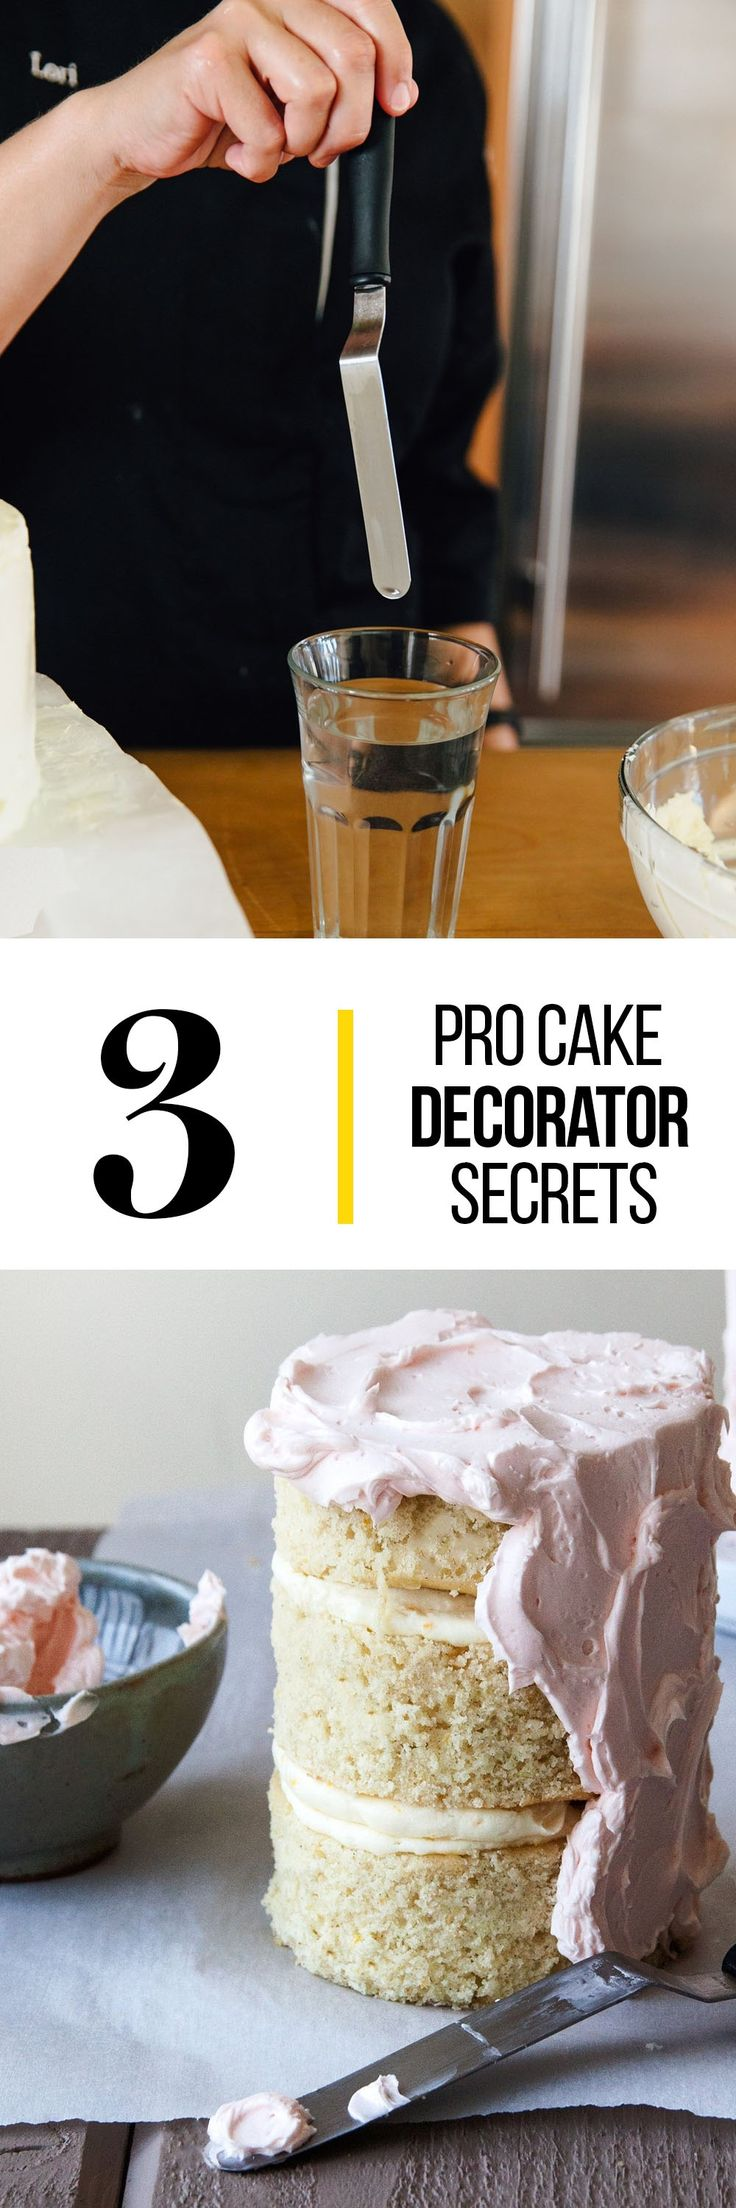 Cake decorating sounds easy, until you try it for yourself. These quick tips and tricks to help beginner cake decorators will be the key to a more presentable dessert